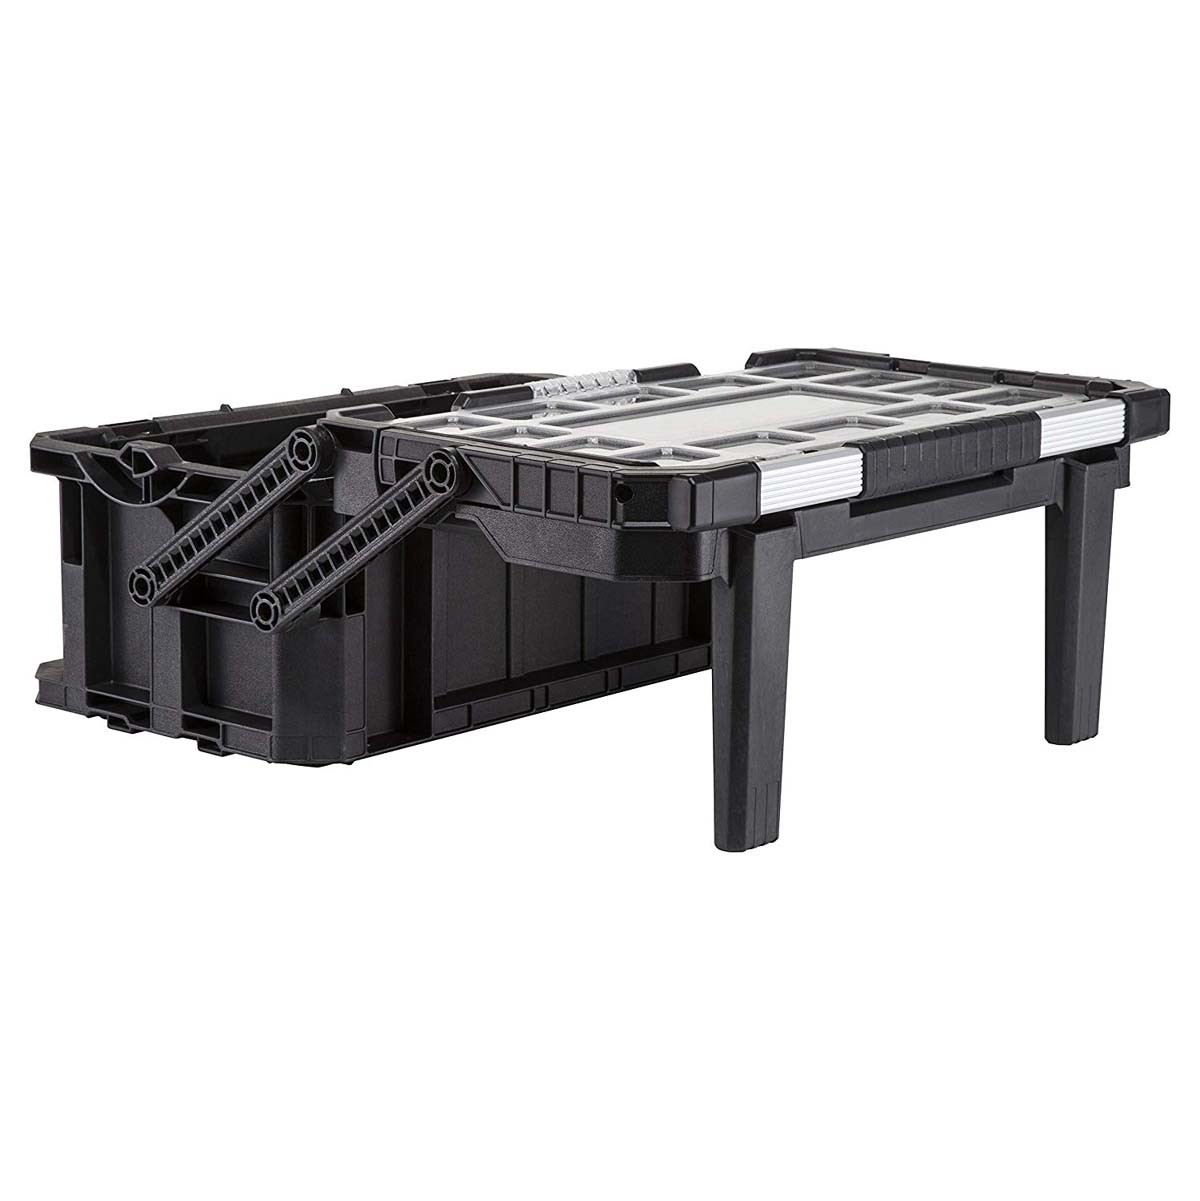 Keter ROC Cantilever Deep Organiser Tool Box Connect Pro